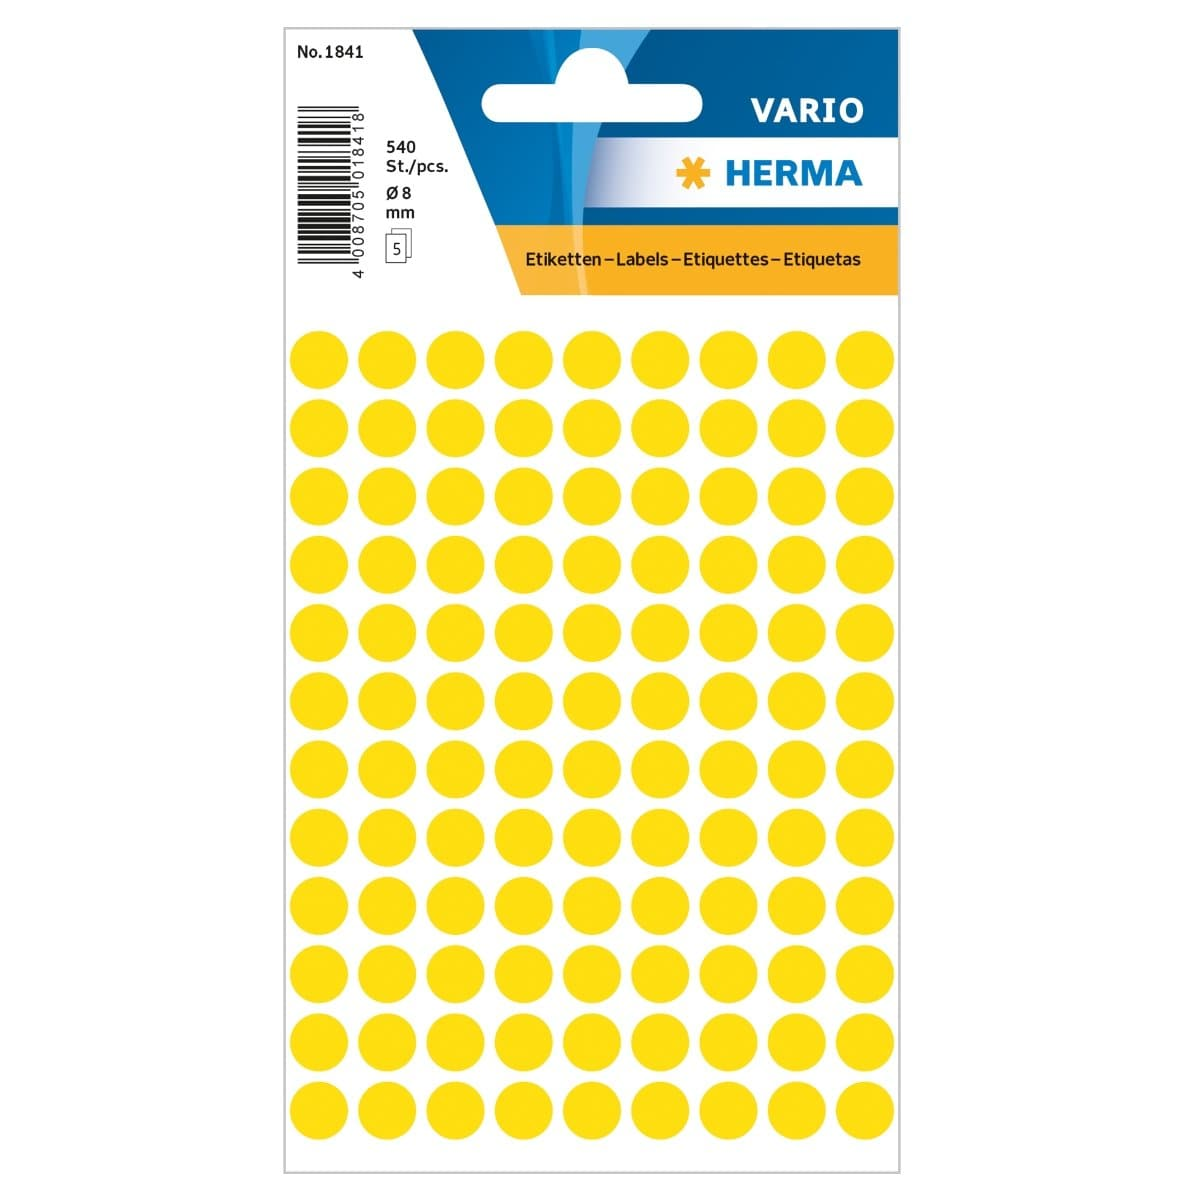 Herma Vario Sticker Color Dots, 8 mm, 540/pack, Yellow